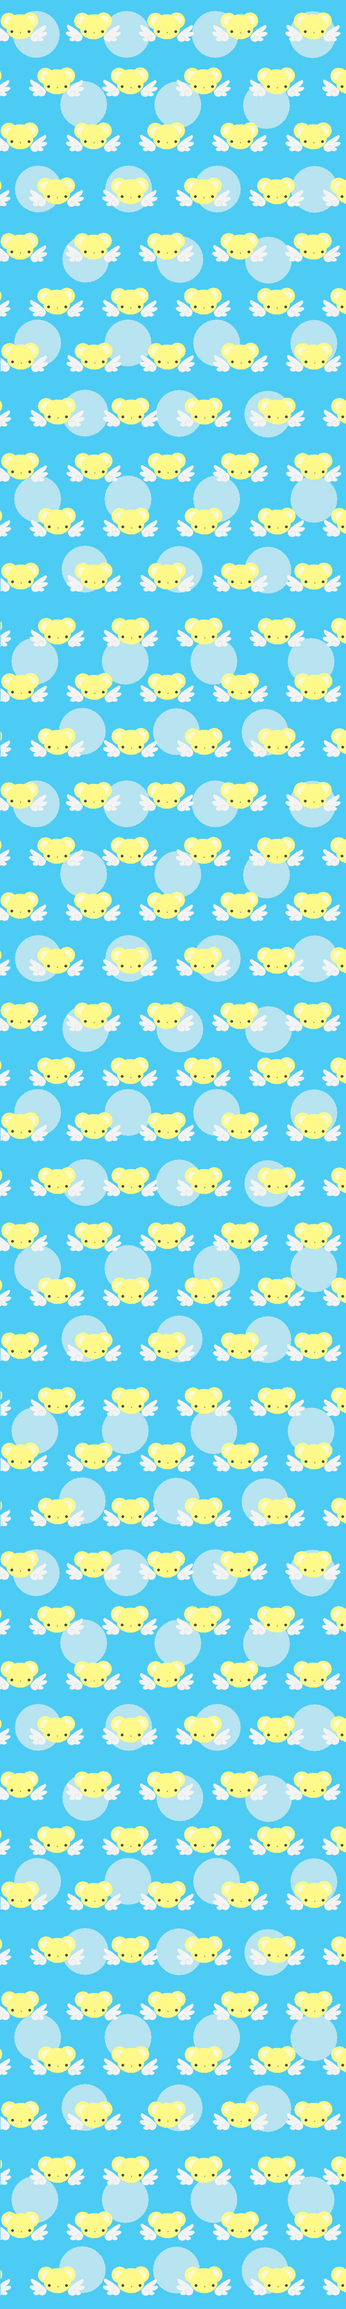 Free Kero Custom Box BG by FuwaFuwaPuppy